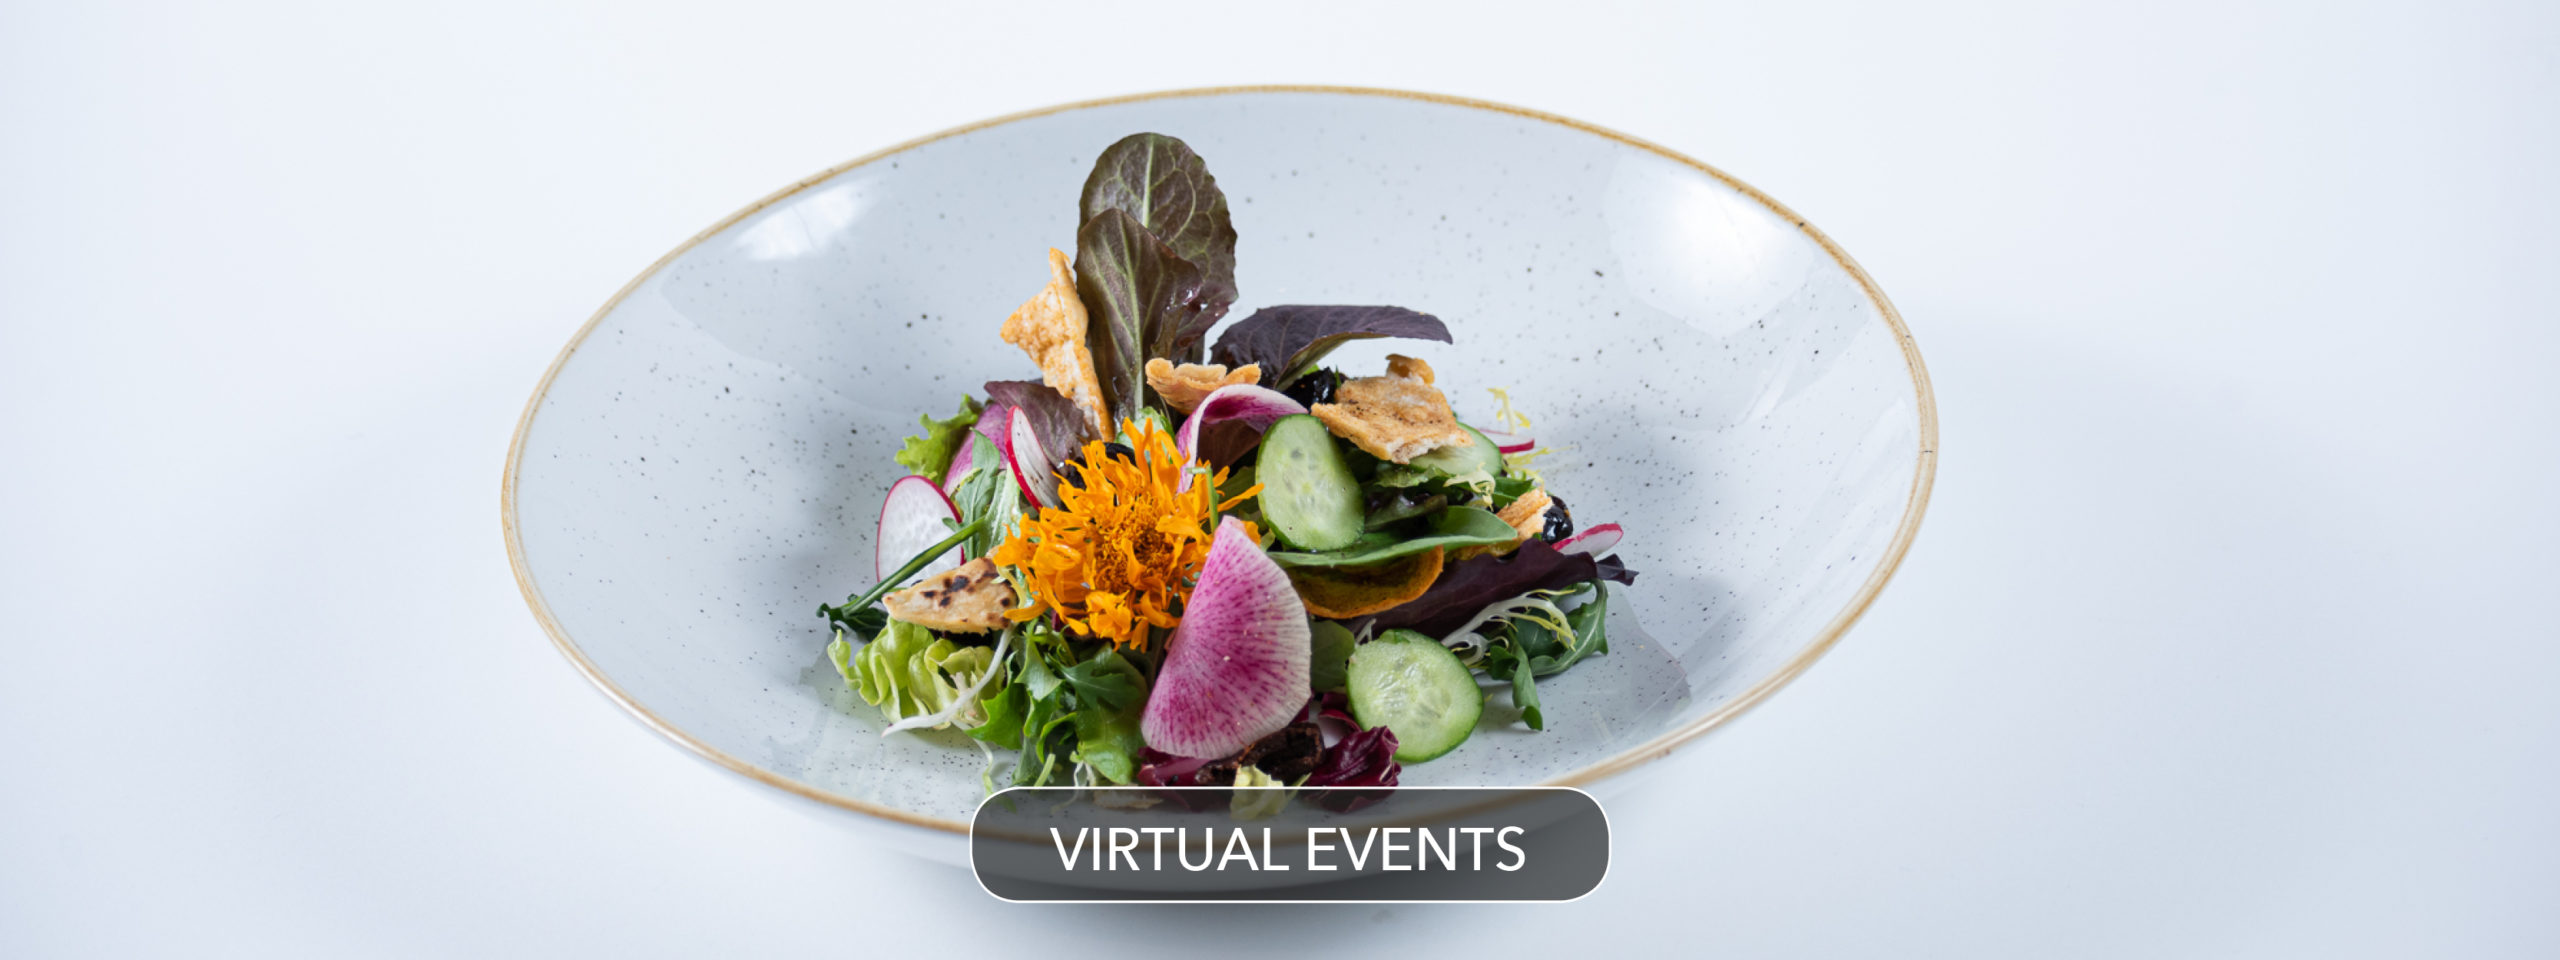 Click Image to view Virtual Events Page